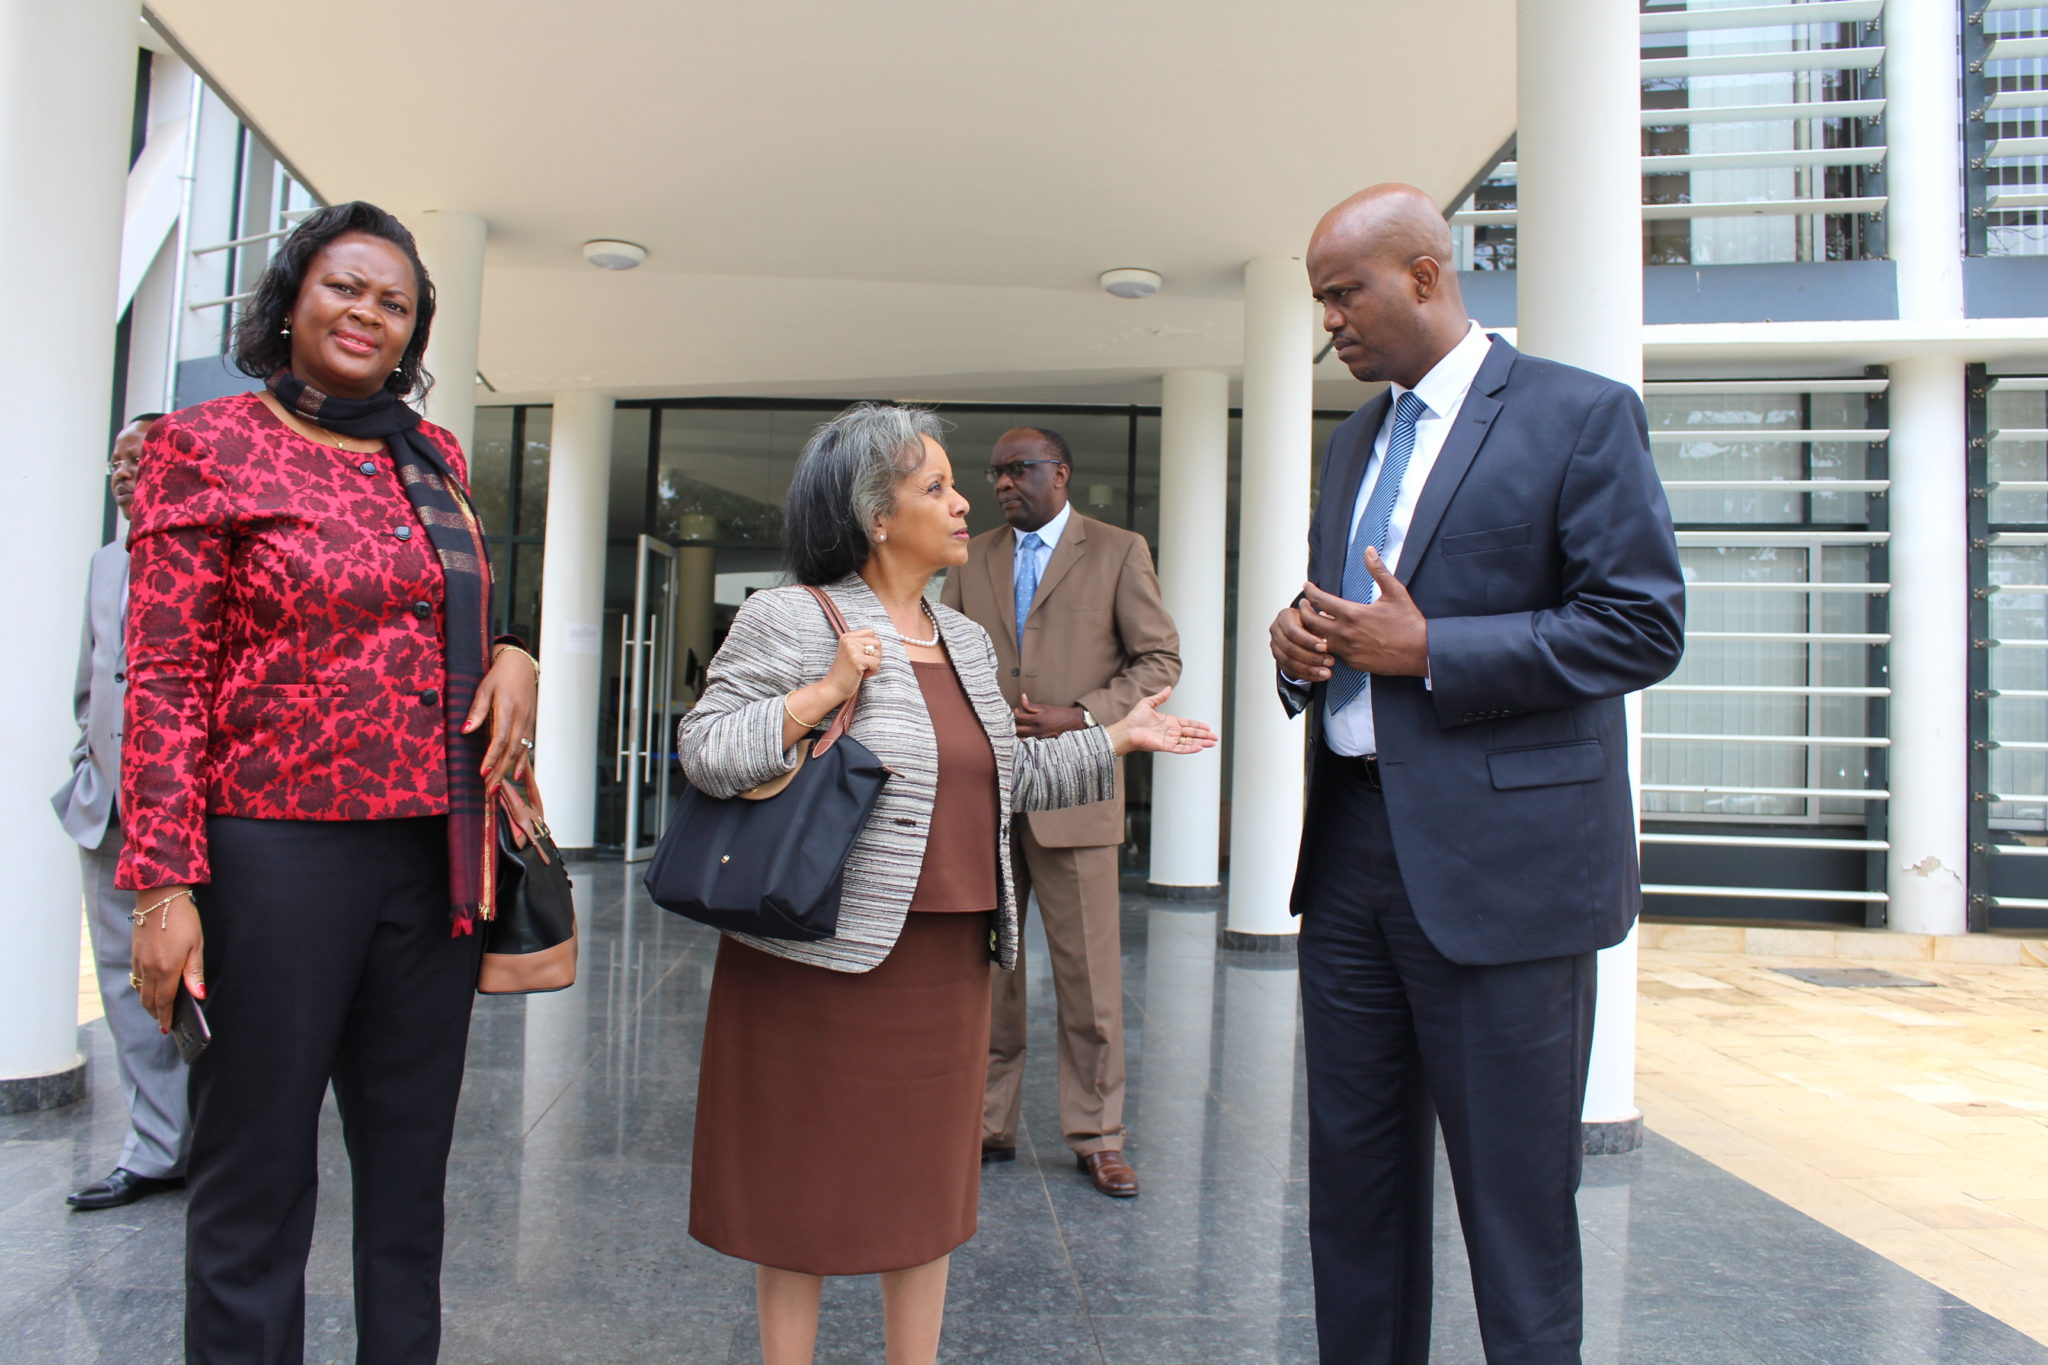 Director General of the UN Office in Nairobi, H.E. Sahle-Work Zewde, with EAC Secretary General Amb. Liberat Mfumukeko outside the EAC Headquarters. On the left is Ms. Ruphina Mbua Manono, the Political Adviser to the Director General.